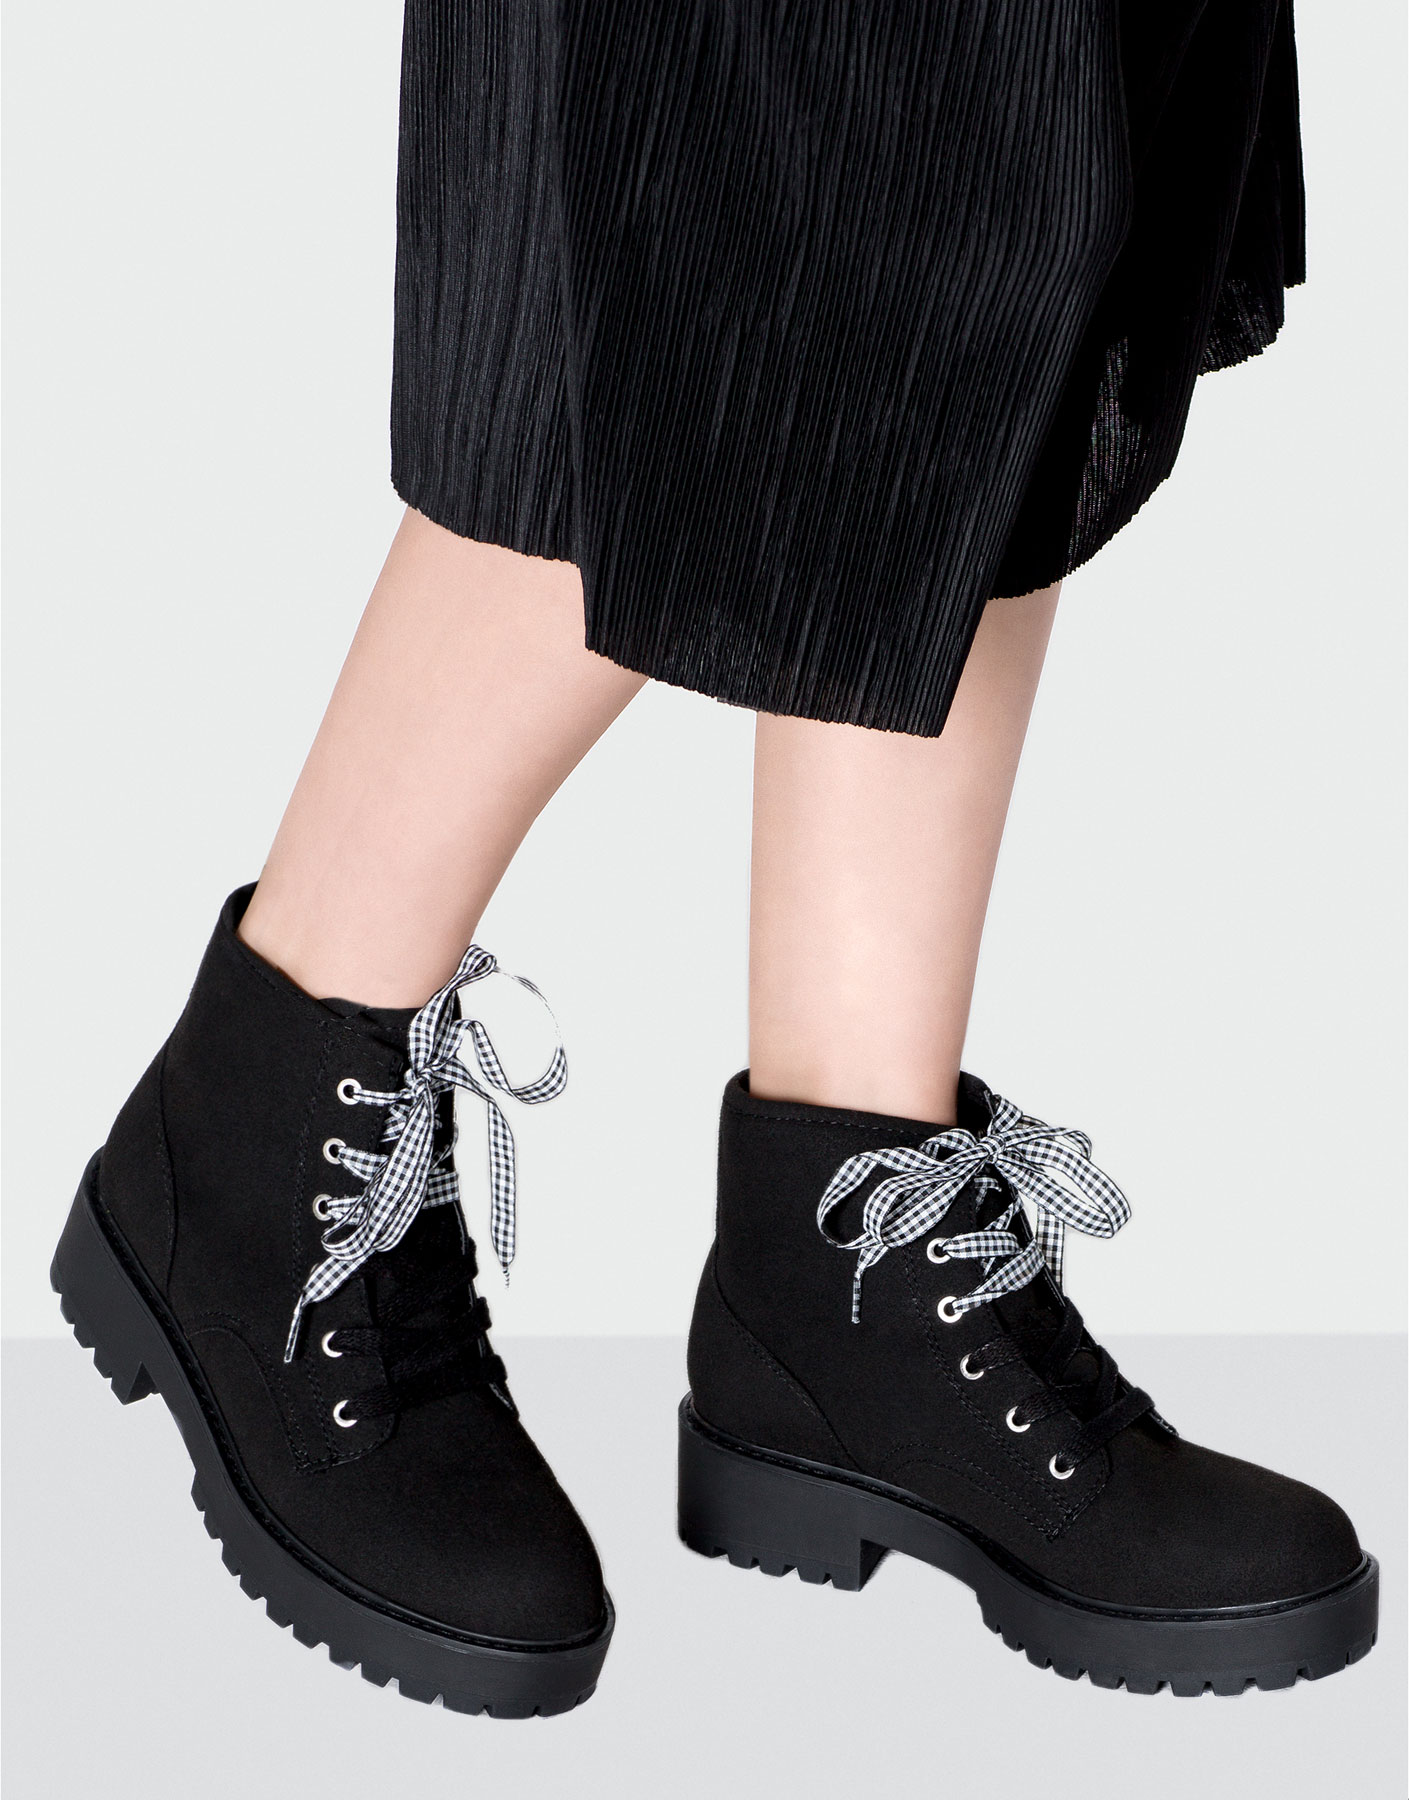 Double cord ankle boots